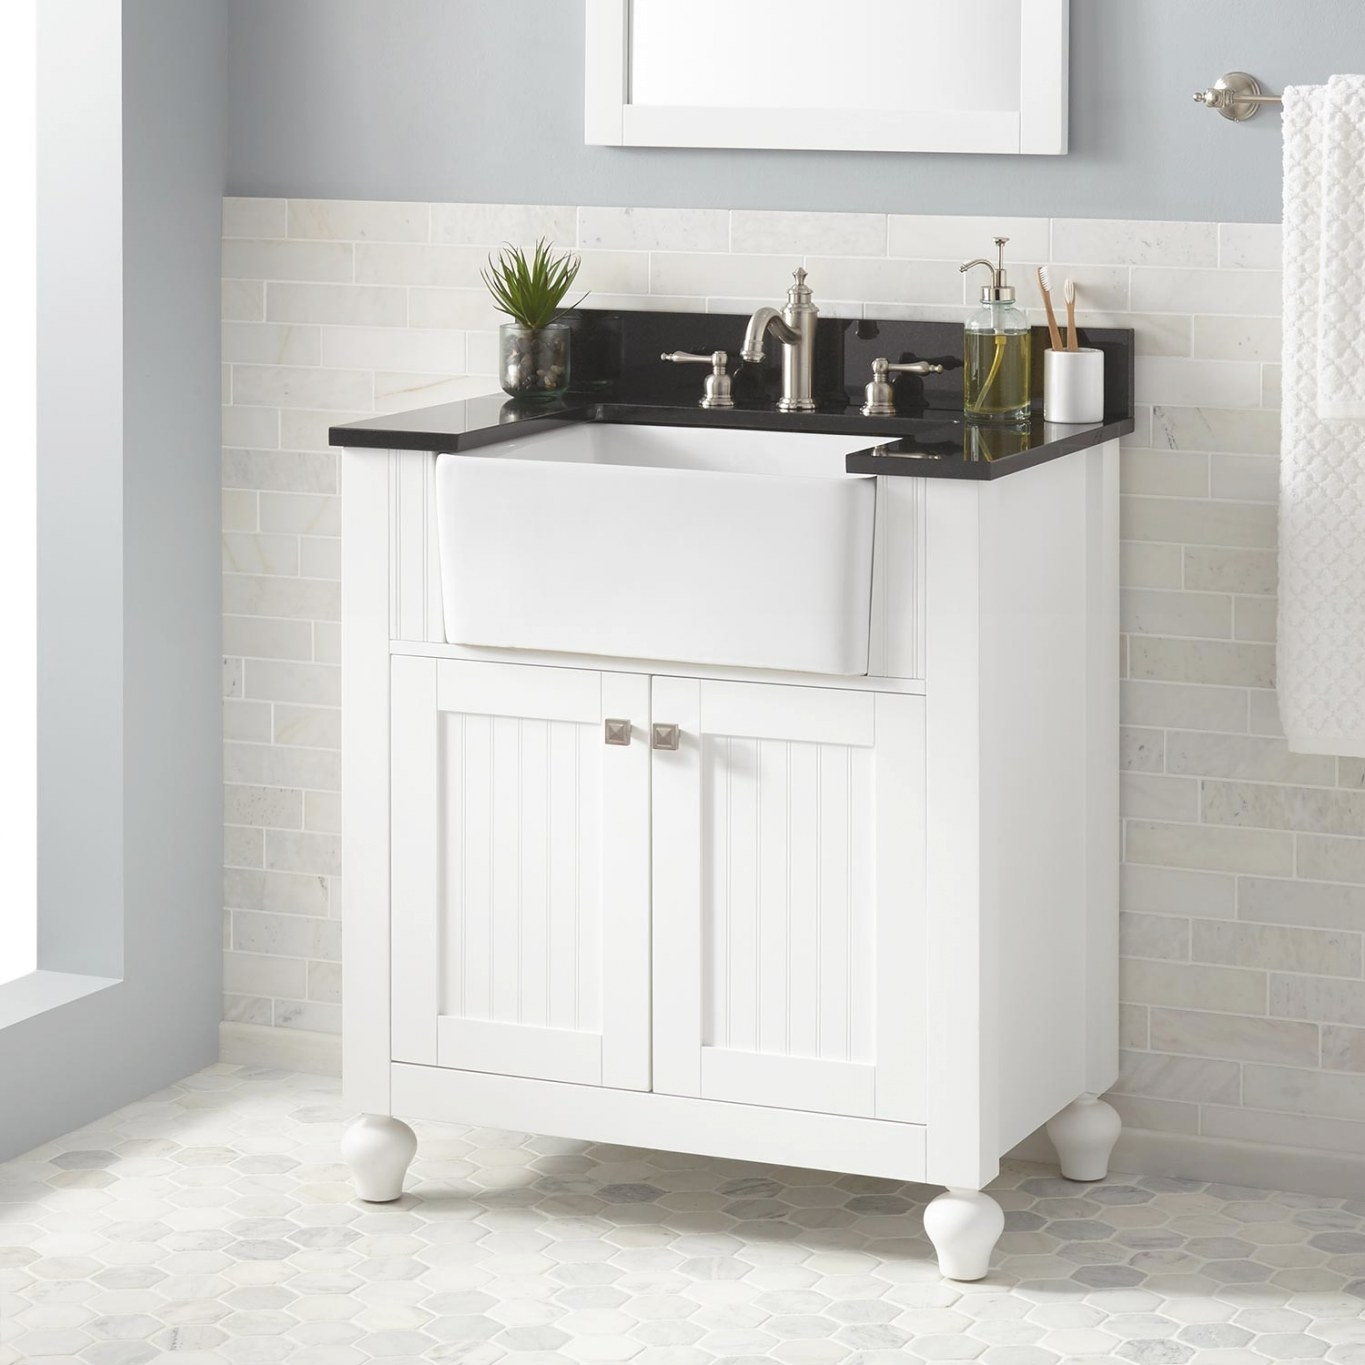 "30"" Nellie Farmhouse Sink Vanity - White - Bathroom within 30"" Bathroom Vanity"